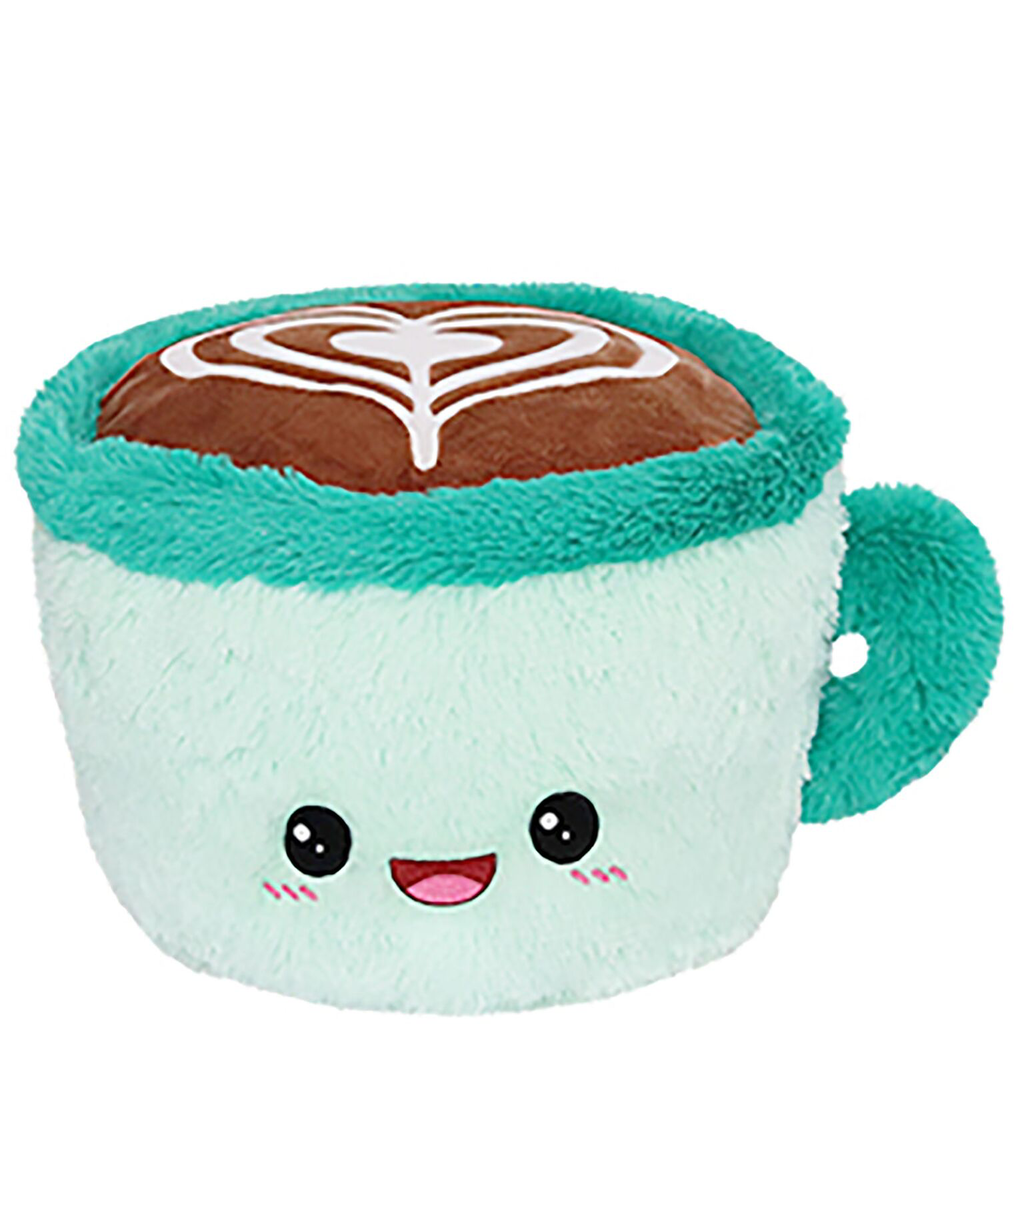 Squishable Comfort Latte